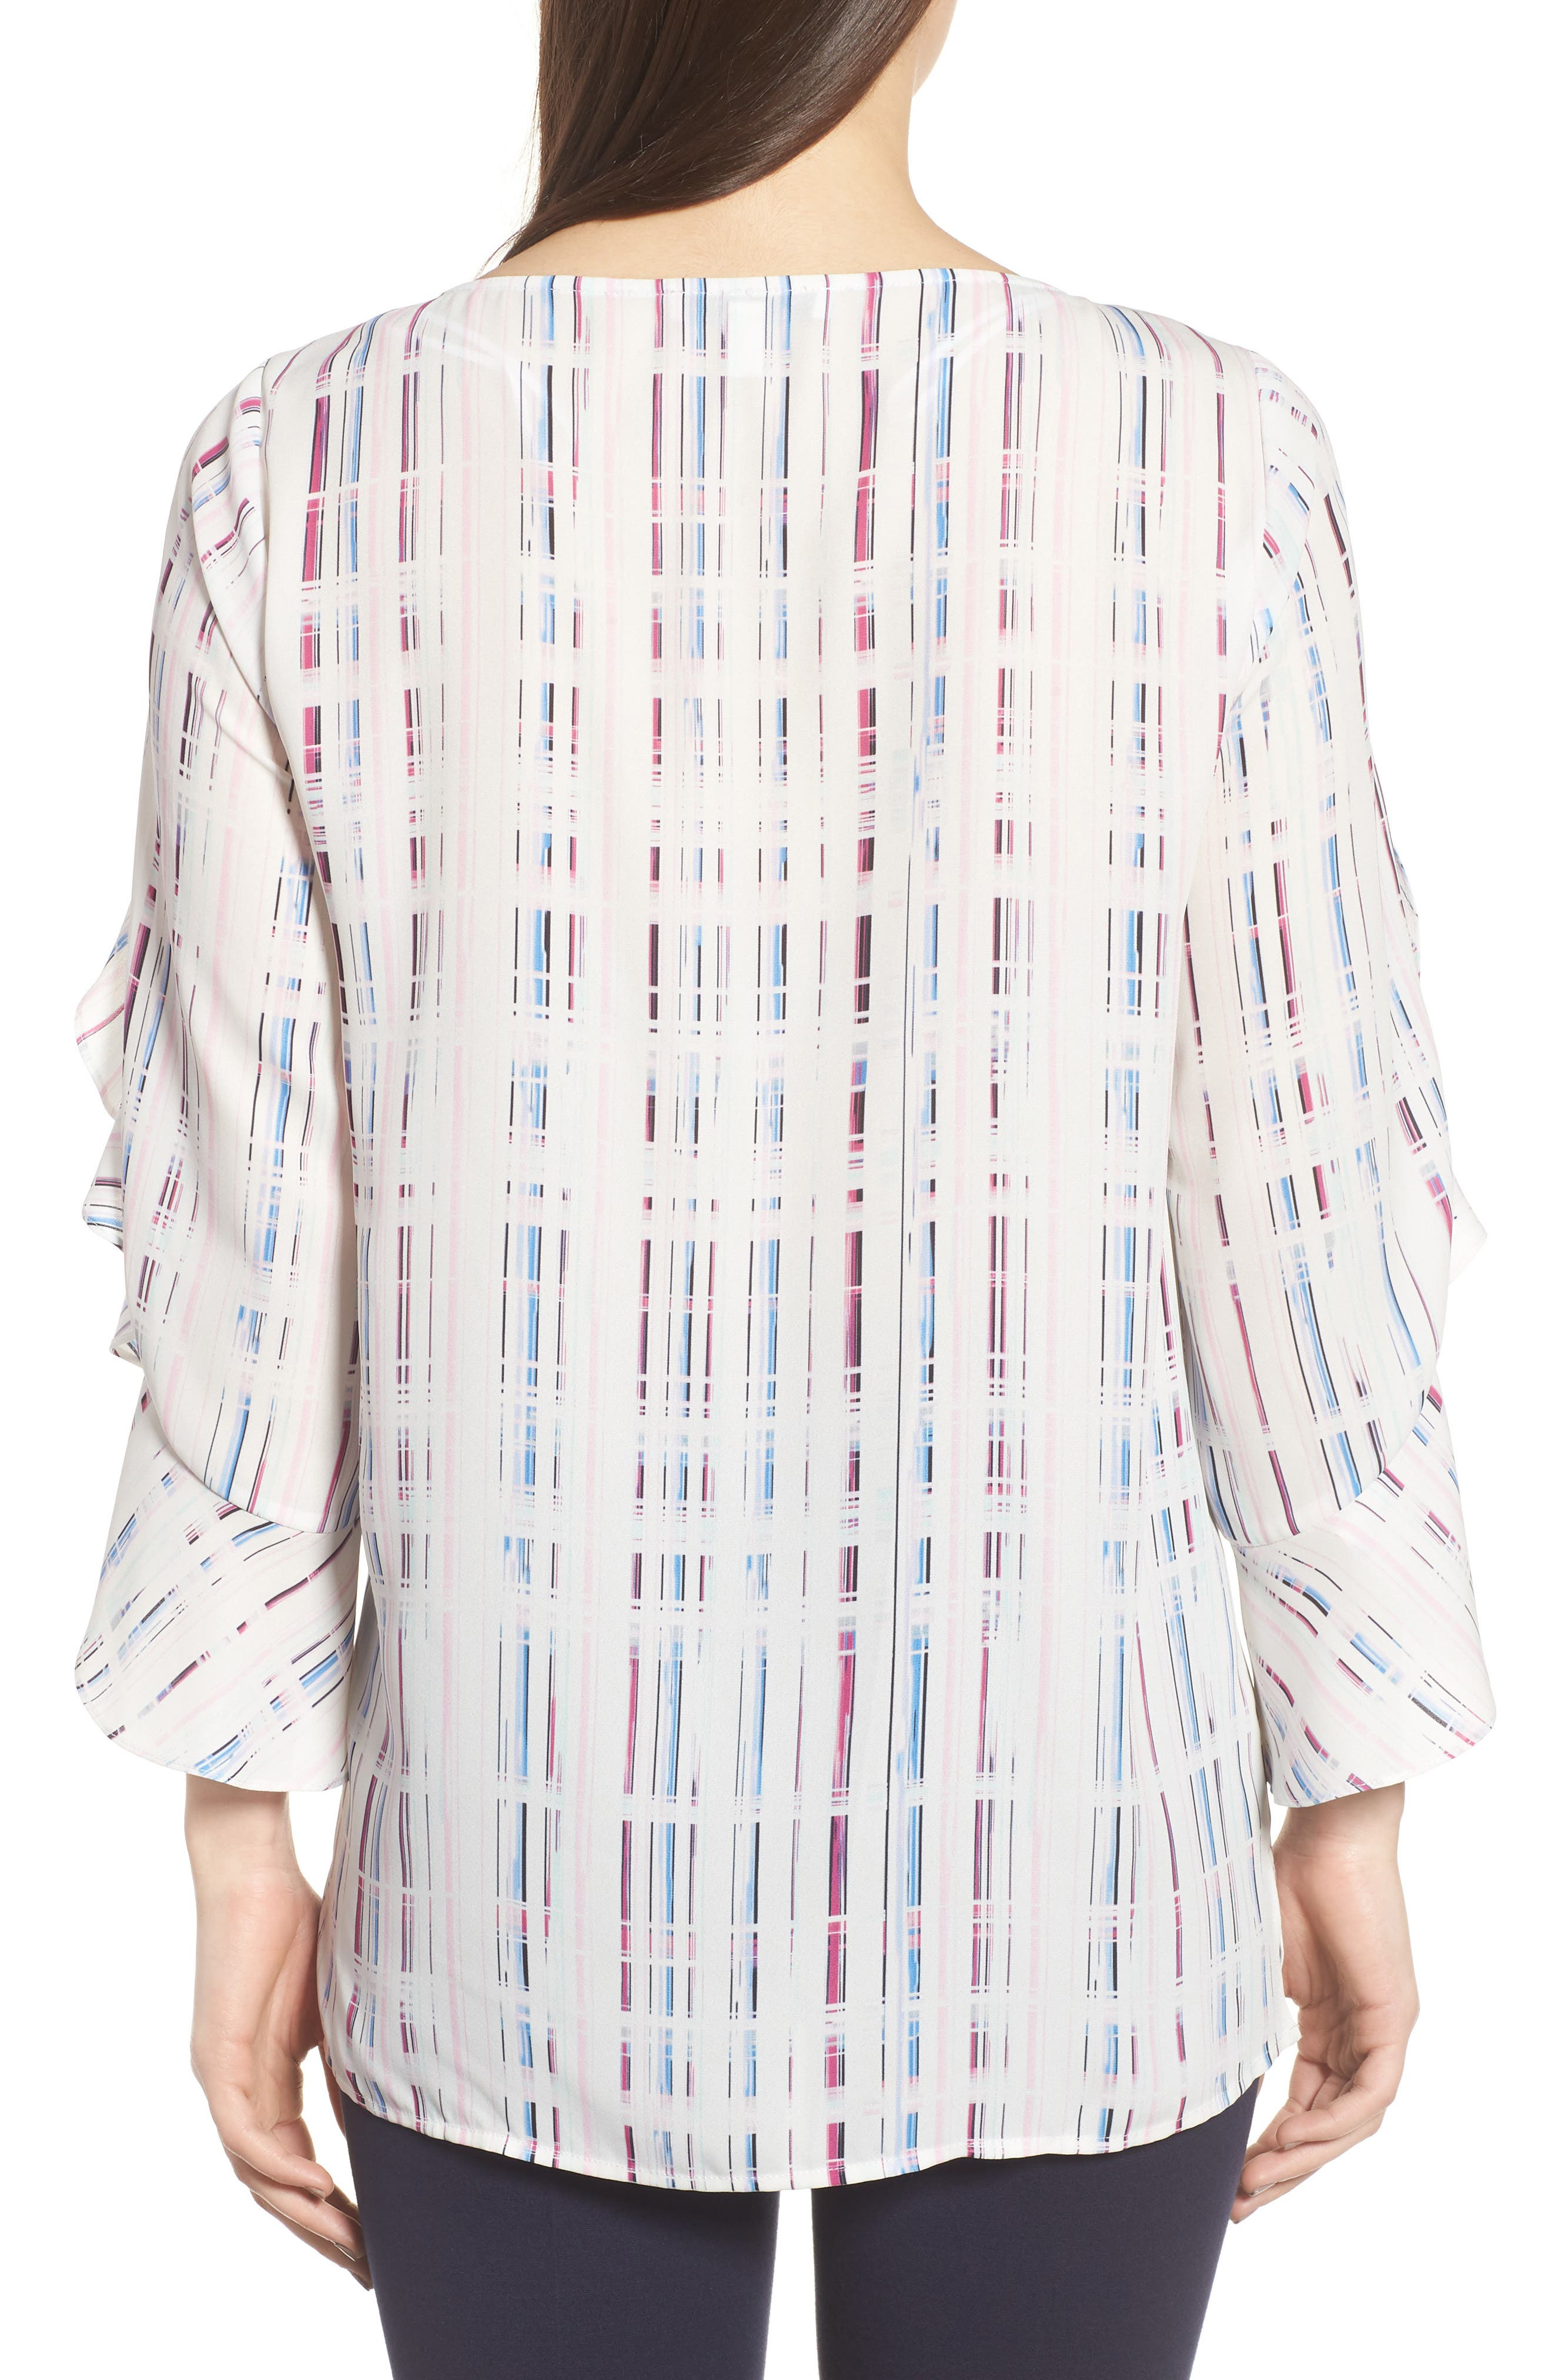 Prism Grid Print Blouse,                             Alternate thumbnail 2, color,                             900